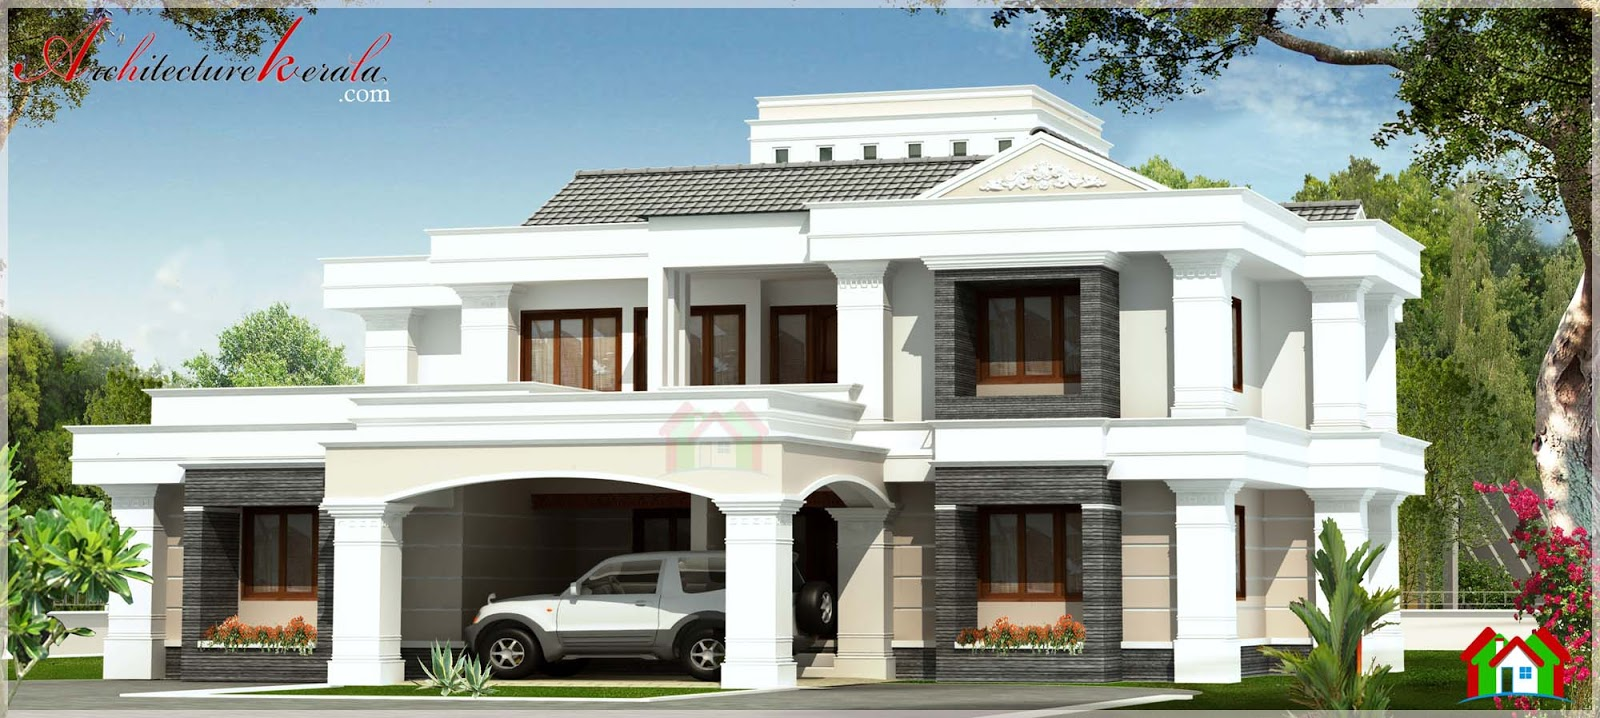 Contemporary style kerala house elevation architecture for Kerala style home designs and elevations